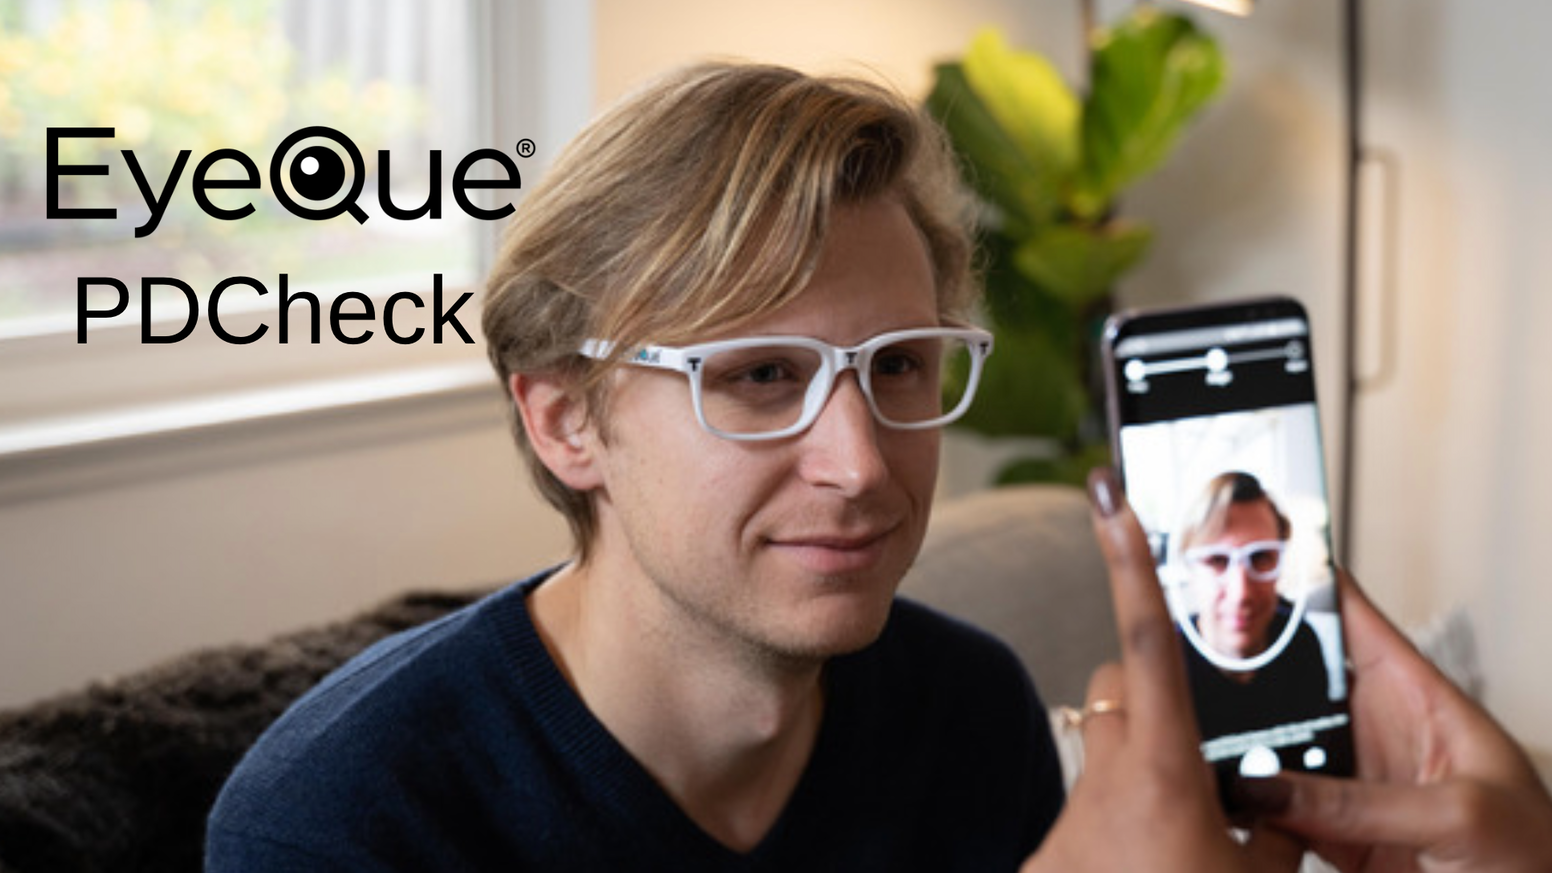 Eyeque Pdcheck The Fastest Easiest Way To Get Your Pd By Eyeque